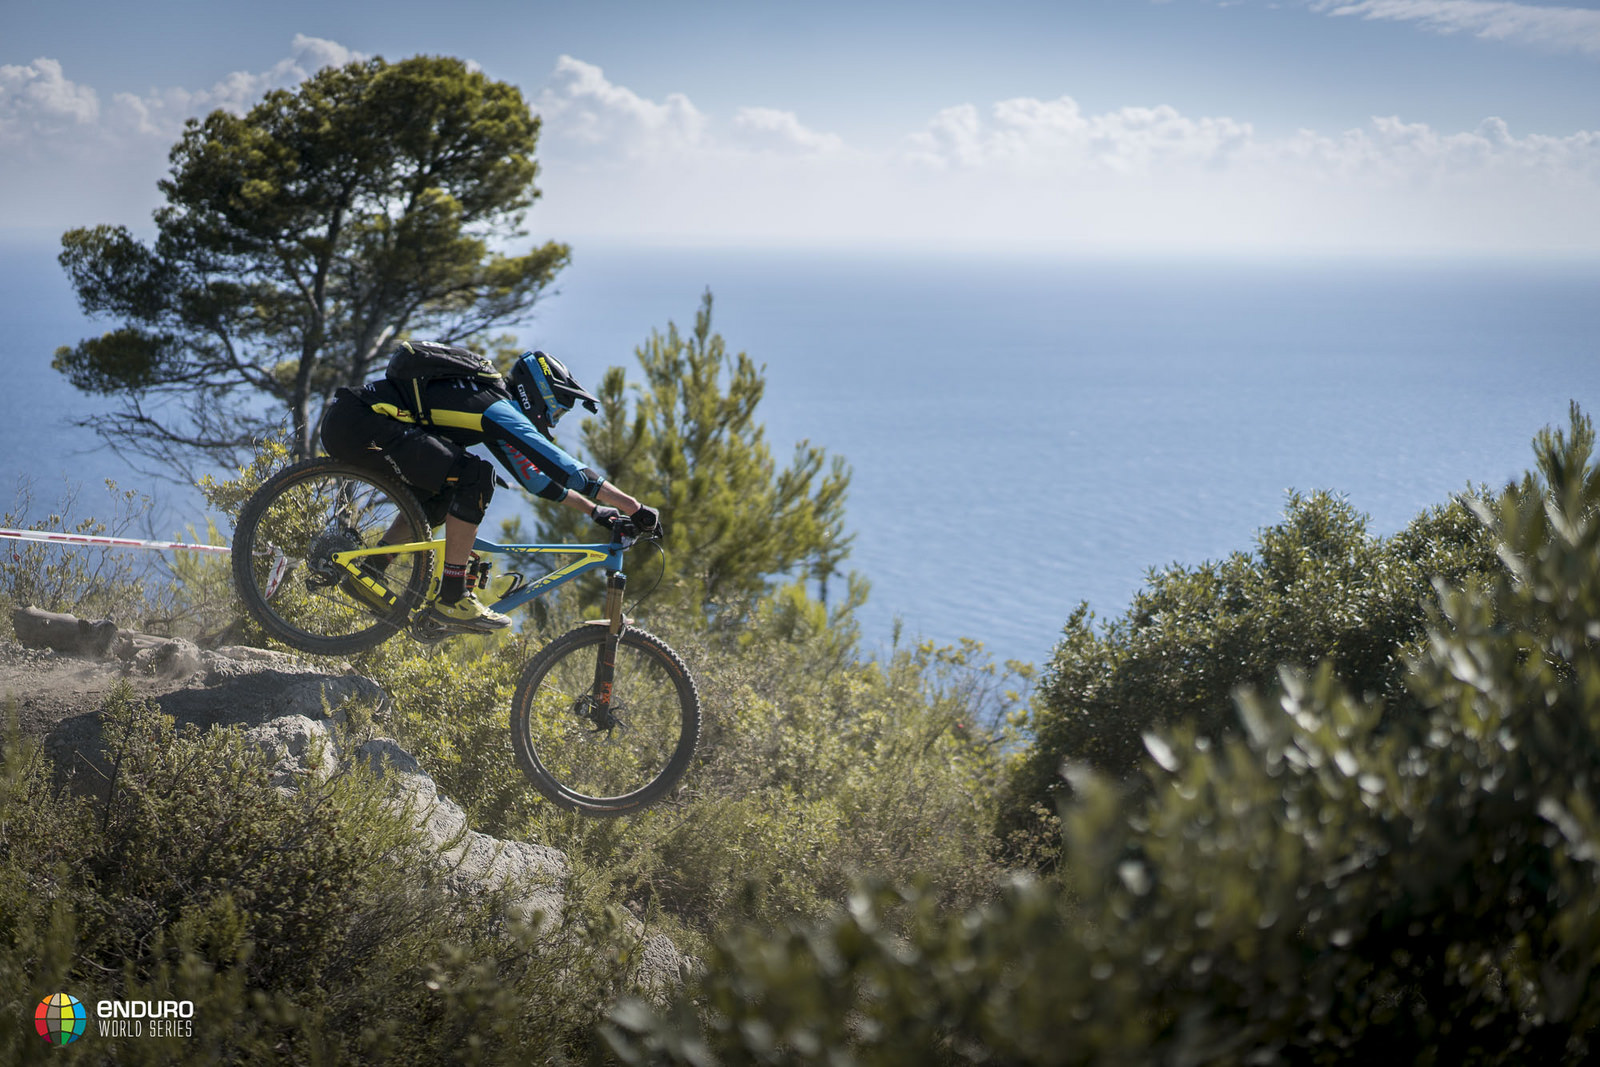 Mountain-bike-Finale-Ligure-1